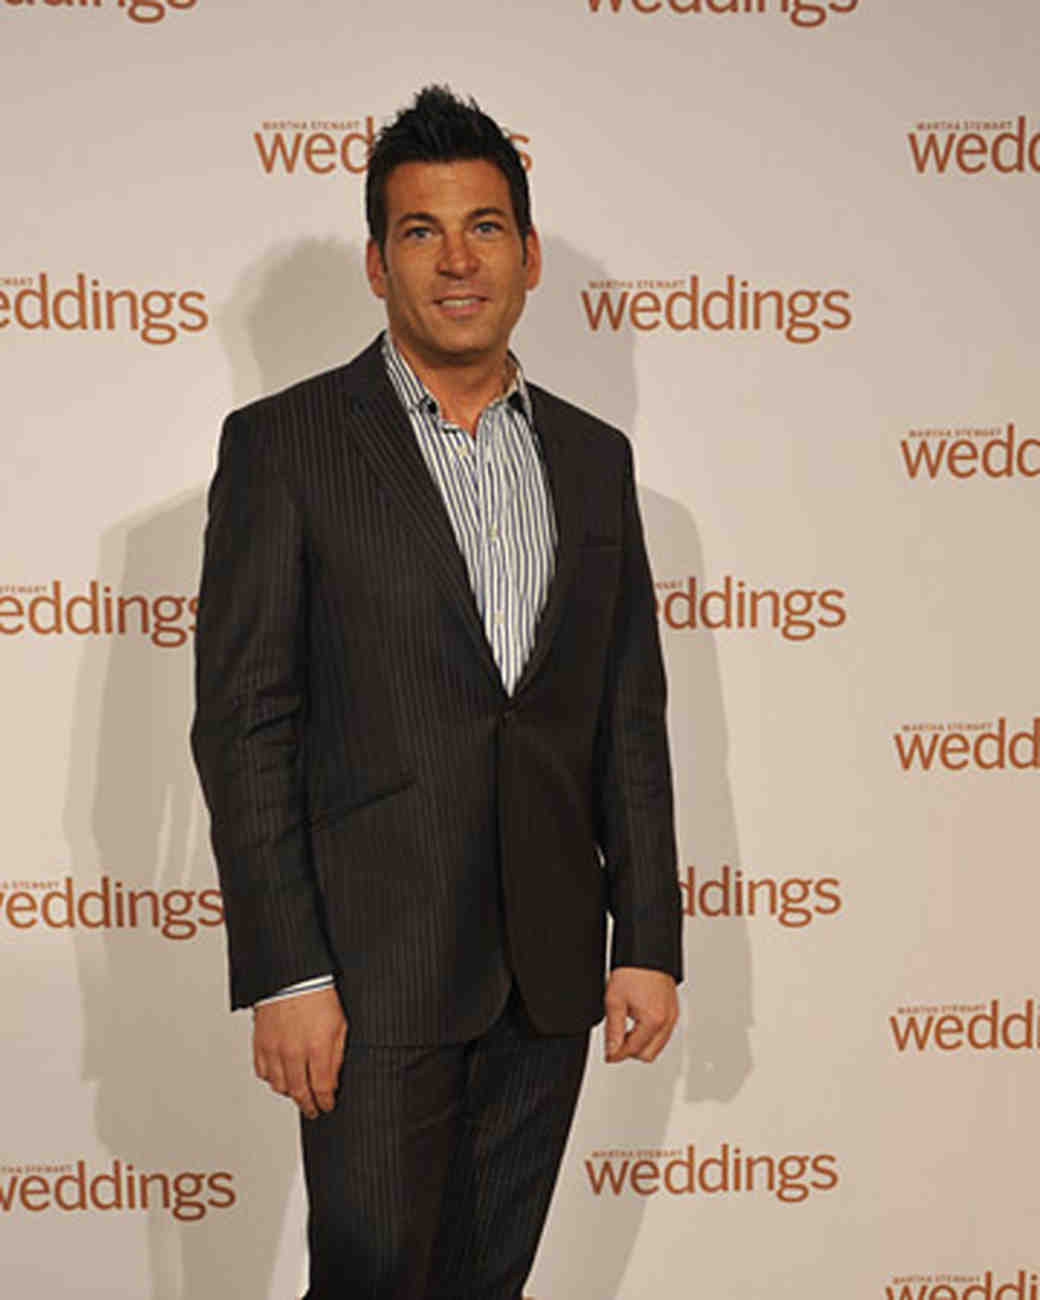 msw_15party_david_tutera.jpg